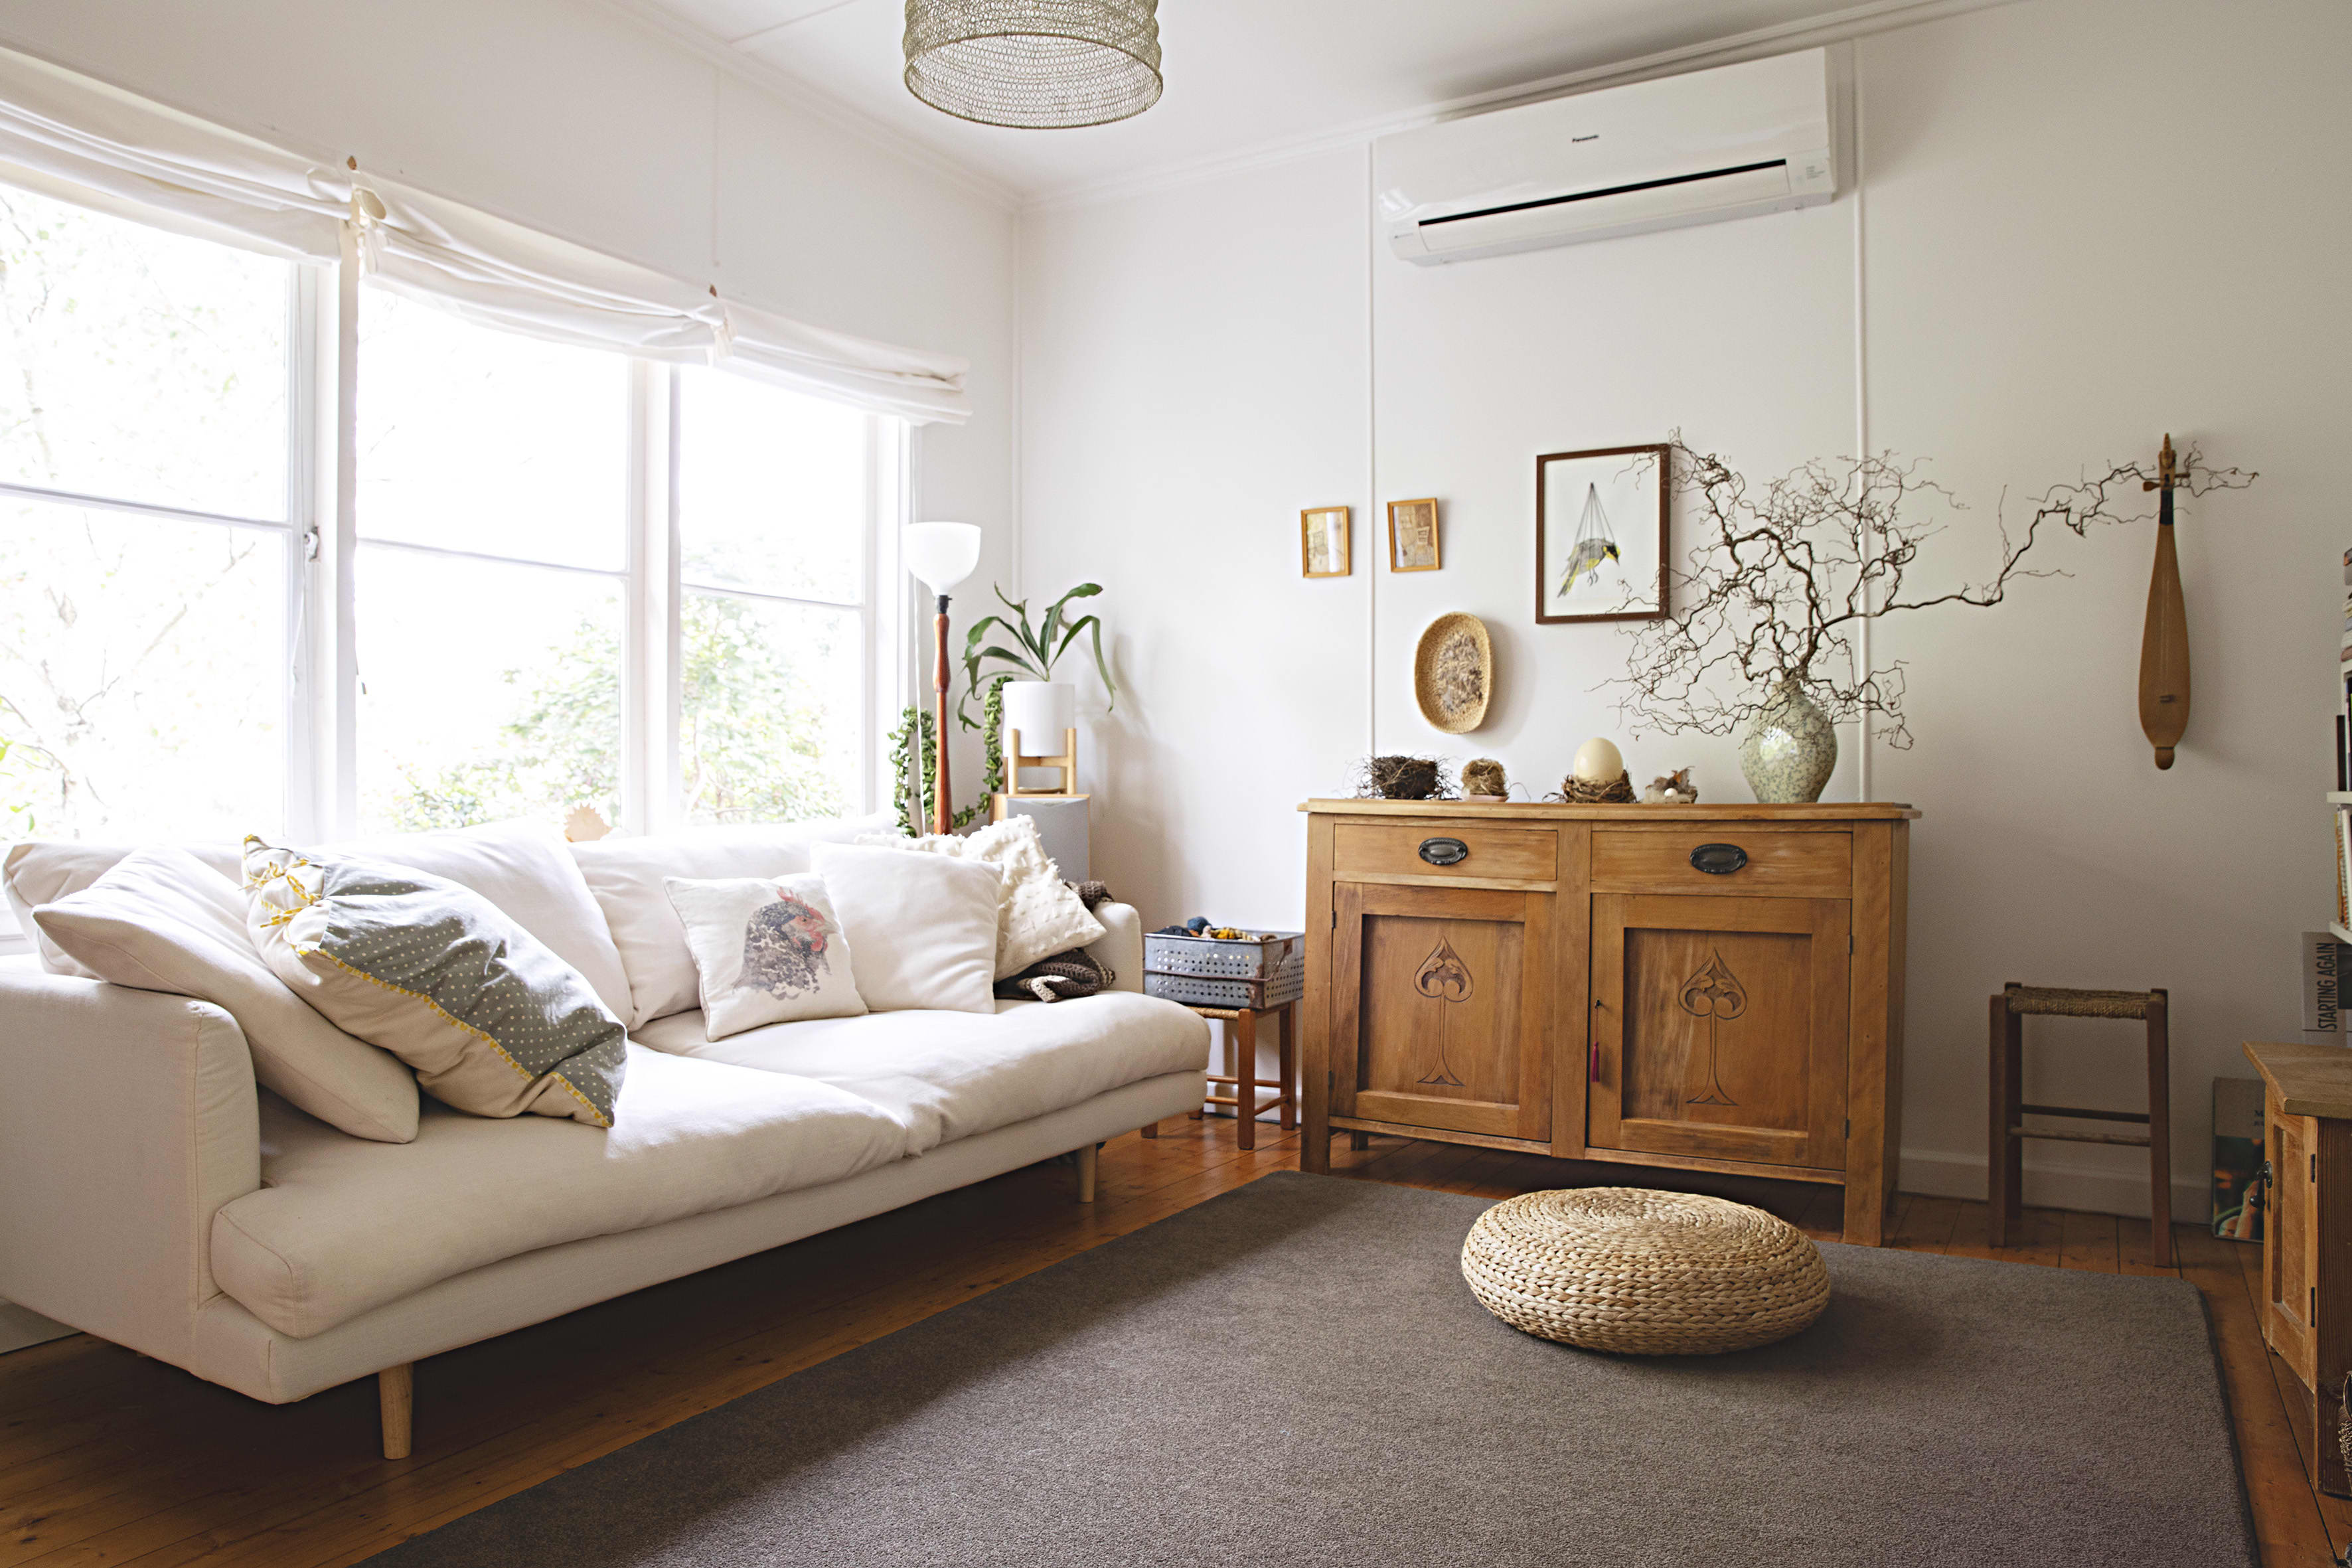 This Australian Home Is Earthy Natural Style Meets Modern Minimalism, Perfected